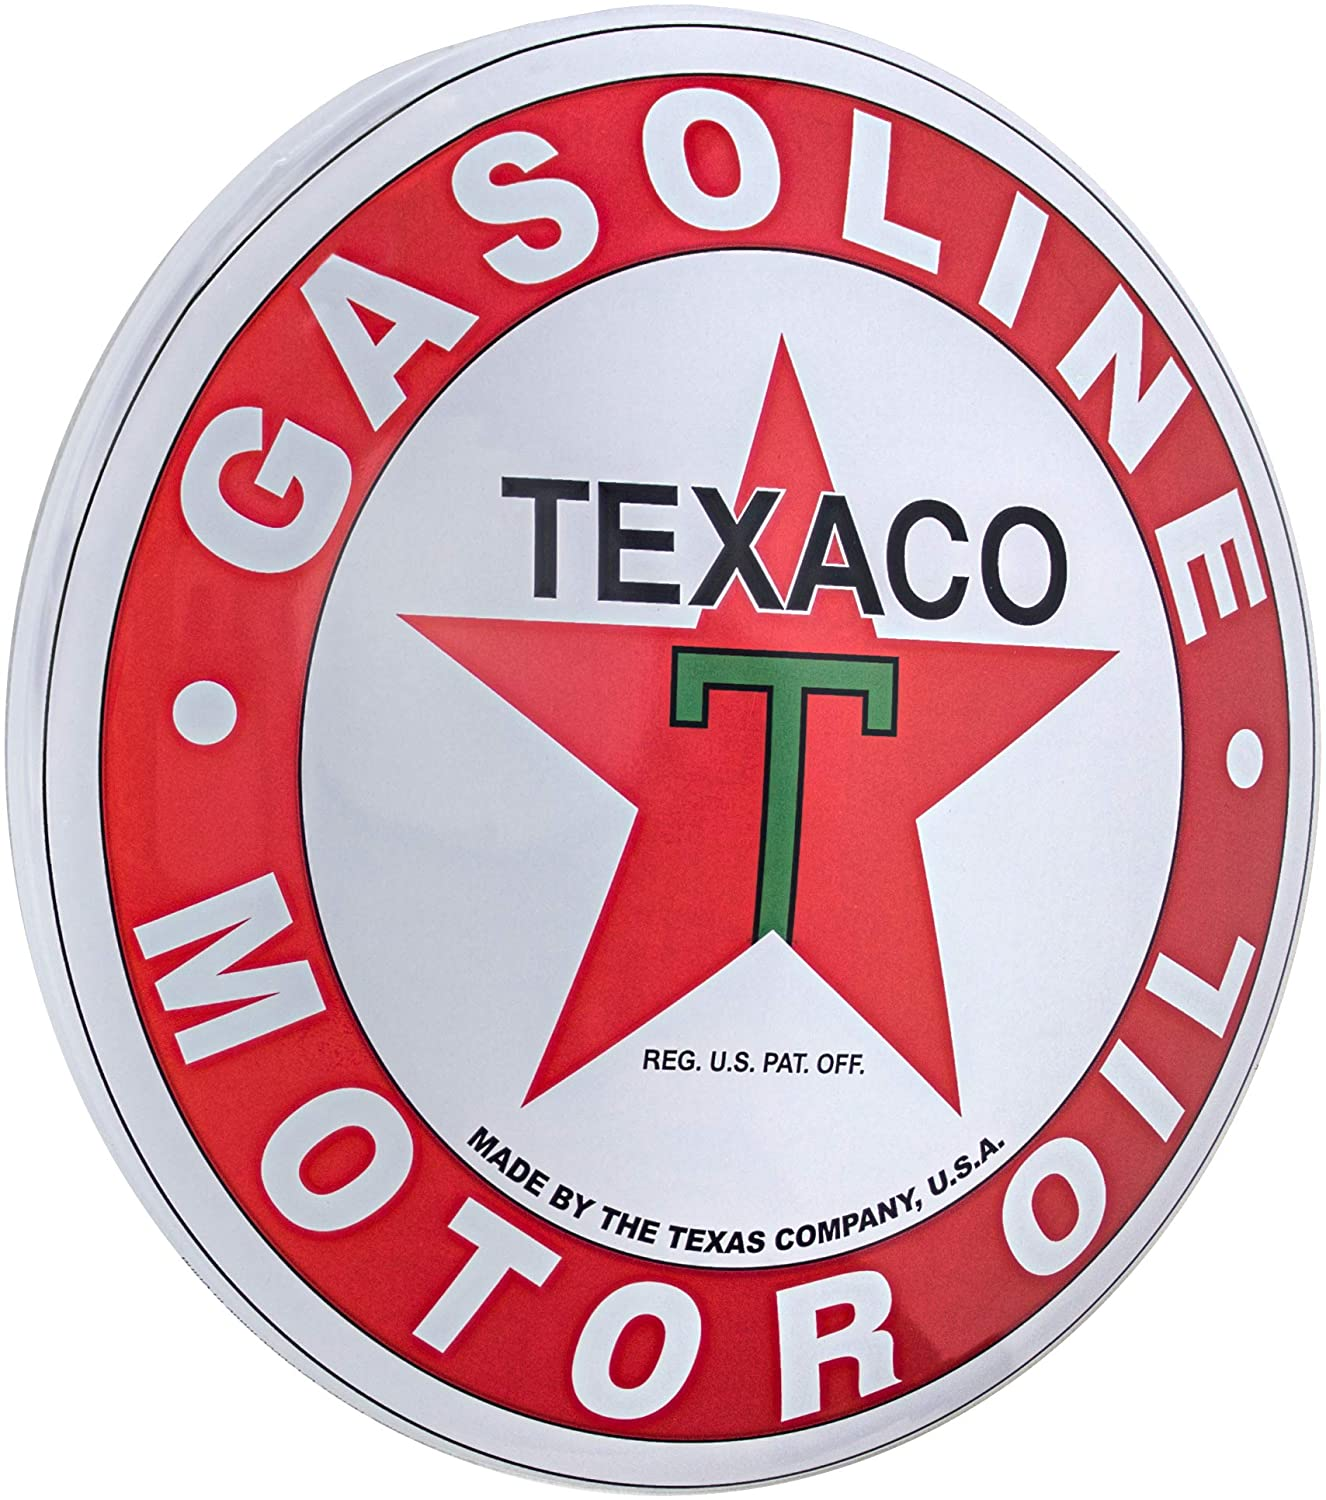 Officially Licensed Texaco Dome Shaped Metal Sign Wall Decor for Bar, Garage or Man Cave (15